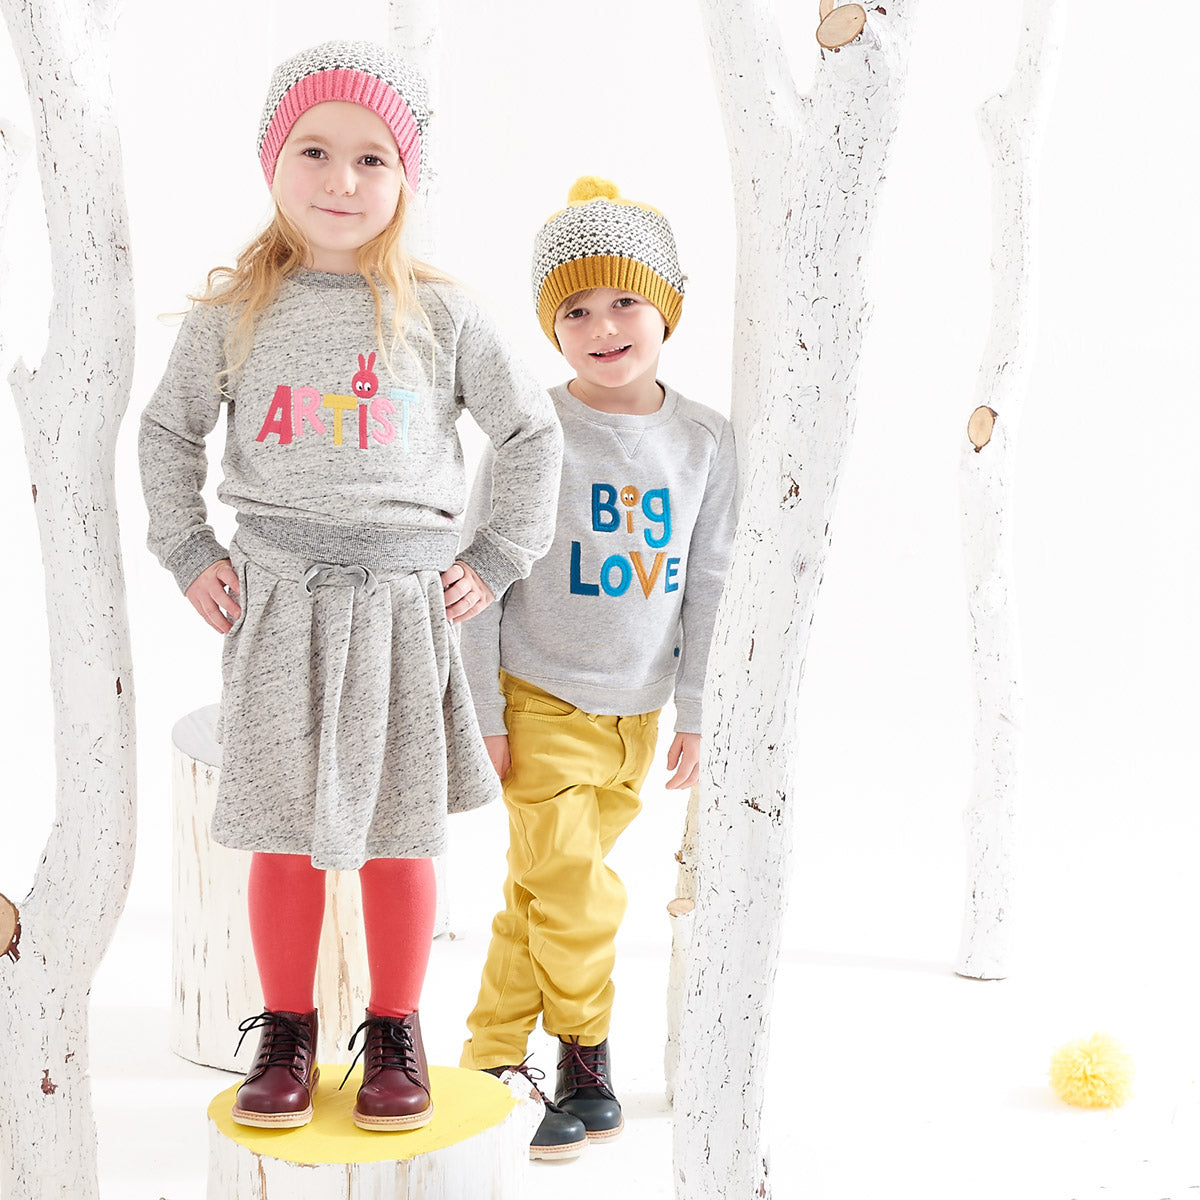 alternative school outfits for kids from the bonniemob